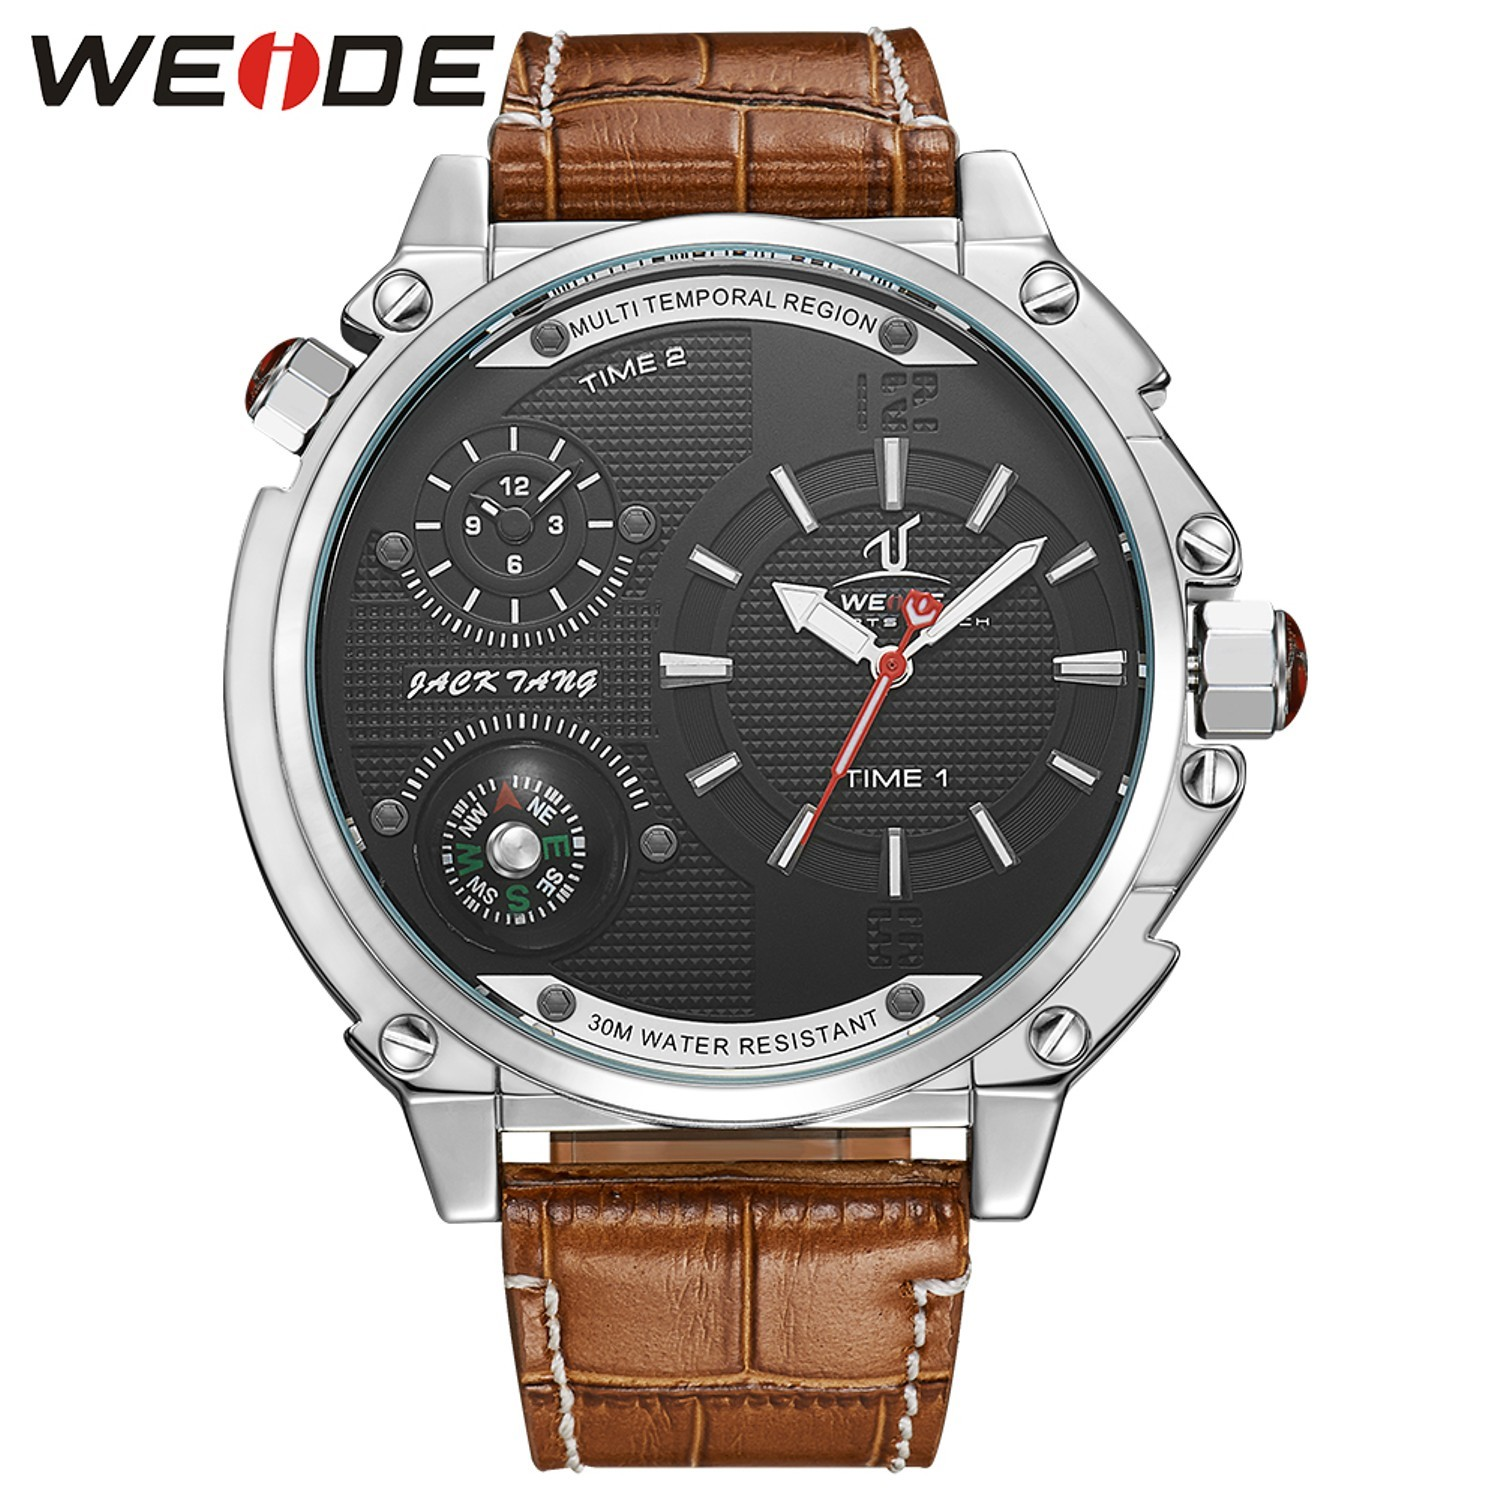 WEIDE-Men-s-Sport-Dress-Watches-Black-Dial-Waterproof-Quartz-Analog-Multiple-Time-Zone-Watches-Leather_1500x1500_STRETCH_421.jpg